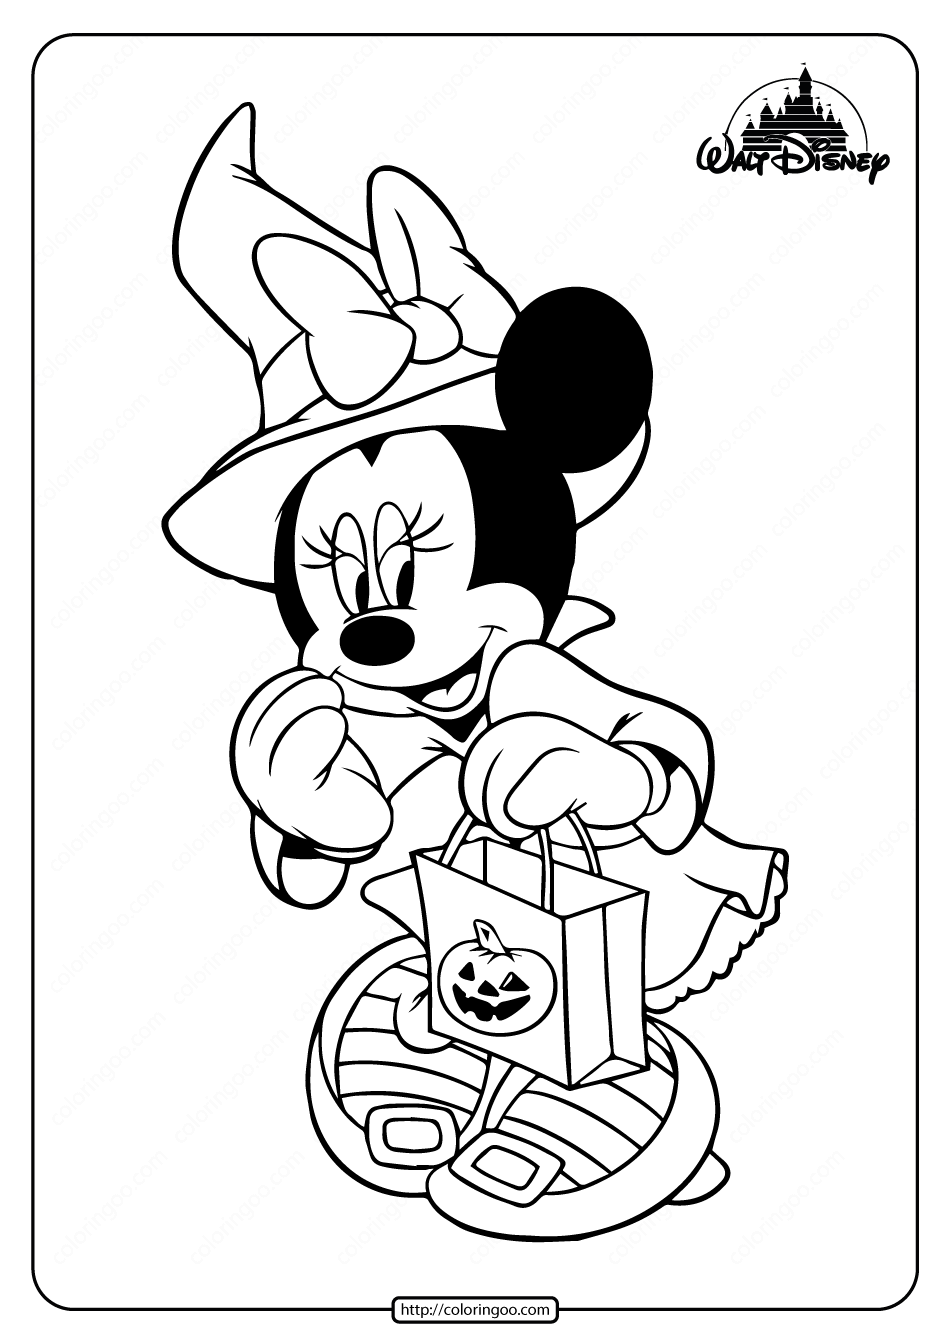 Cute Minnie Mouse Halloween Coloring Pages